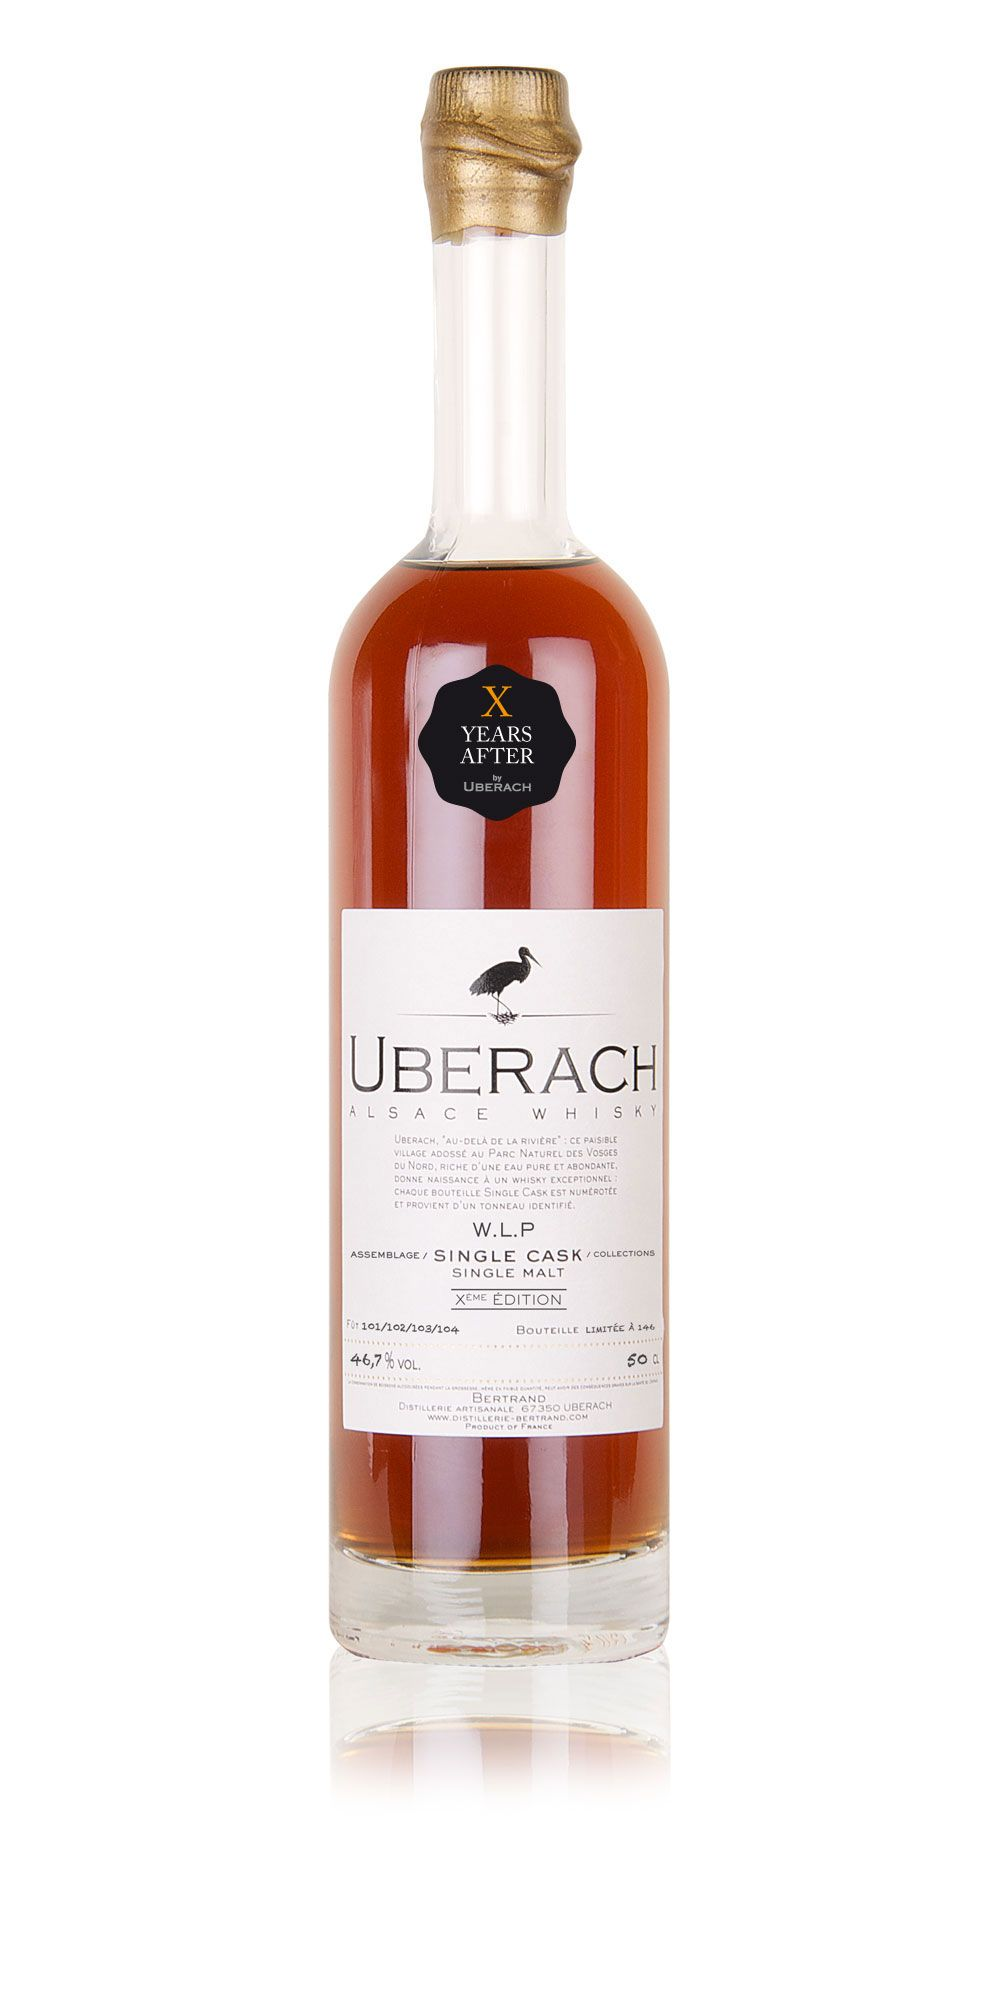 WHISKY UBERACH  |  X Years After Single Cask